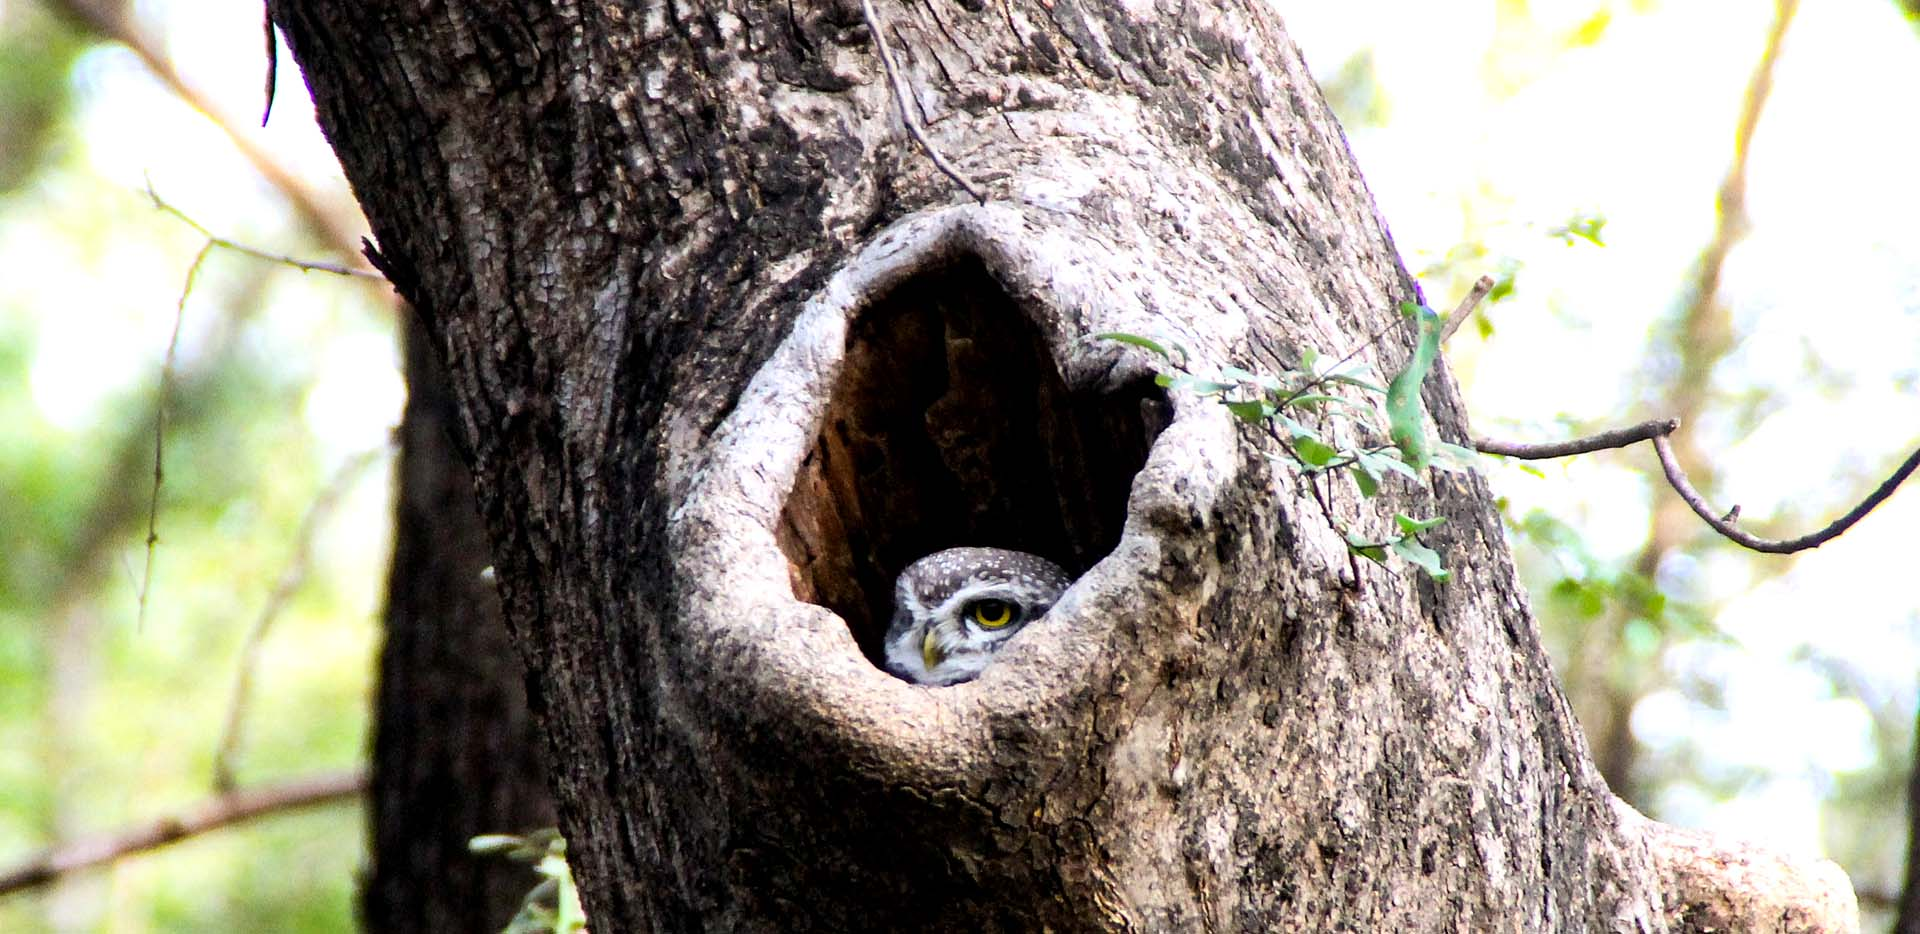 Spotted Owl in Hollow Tree